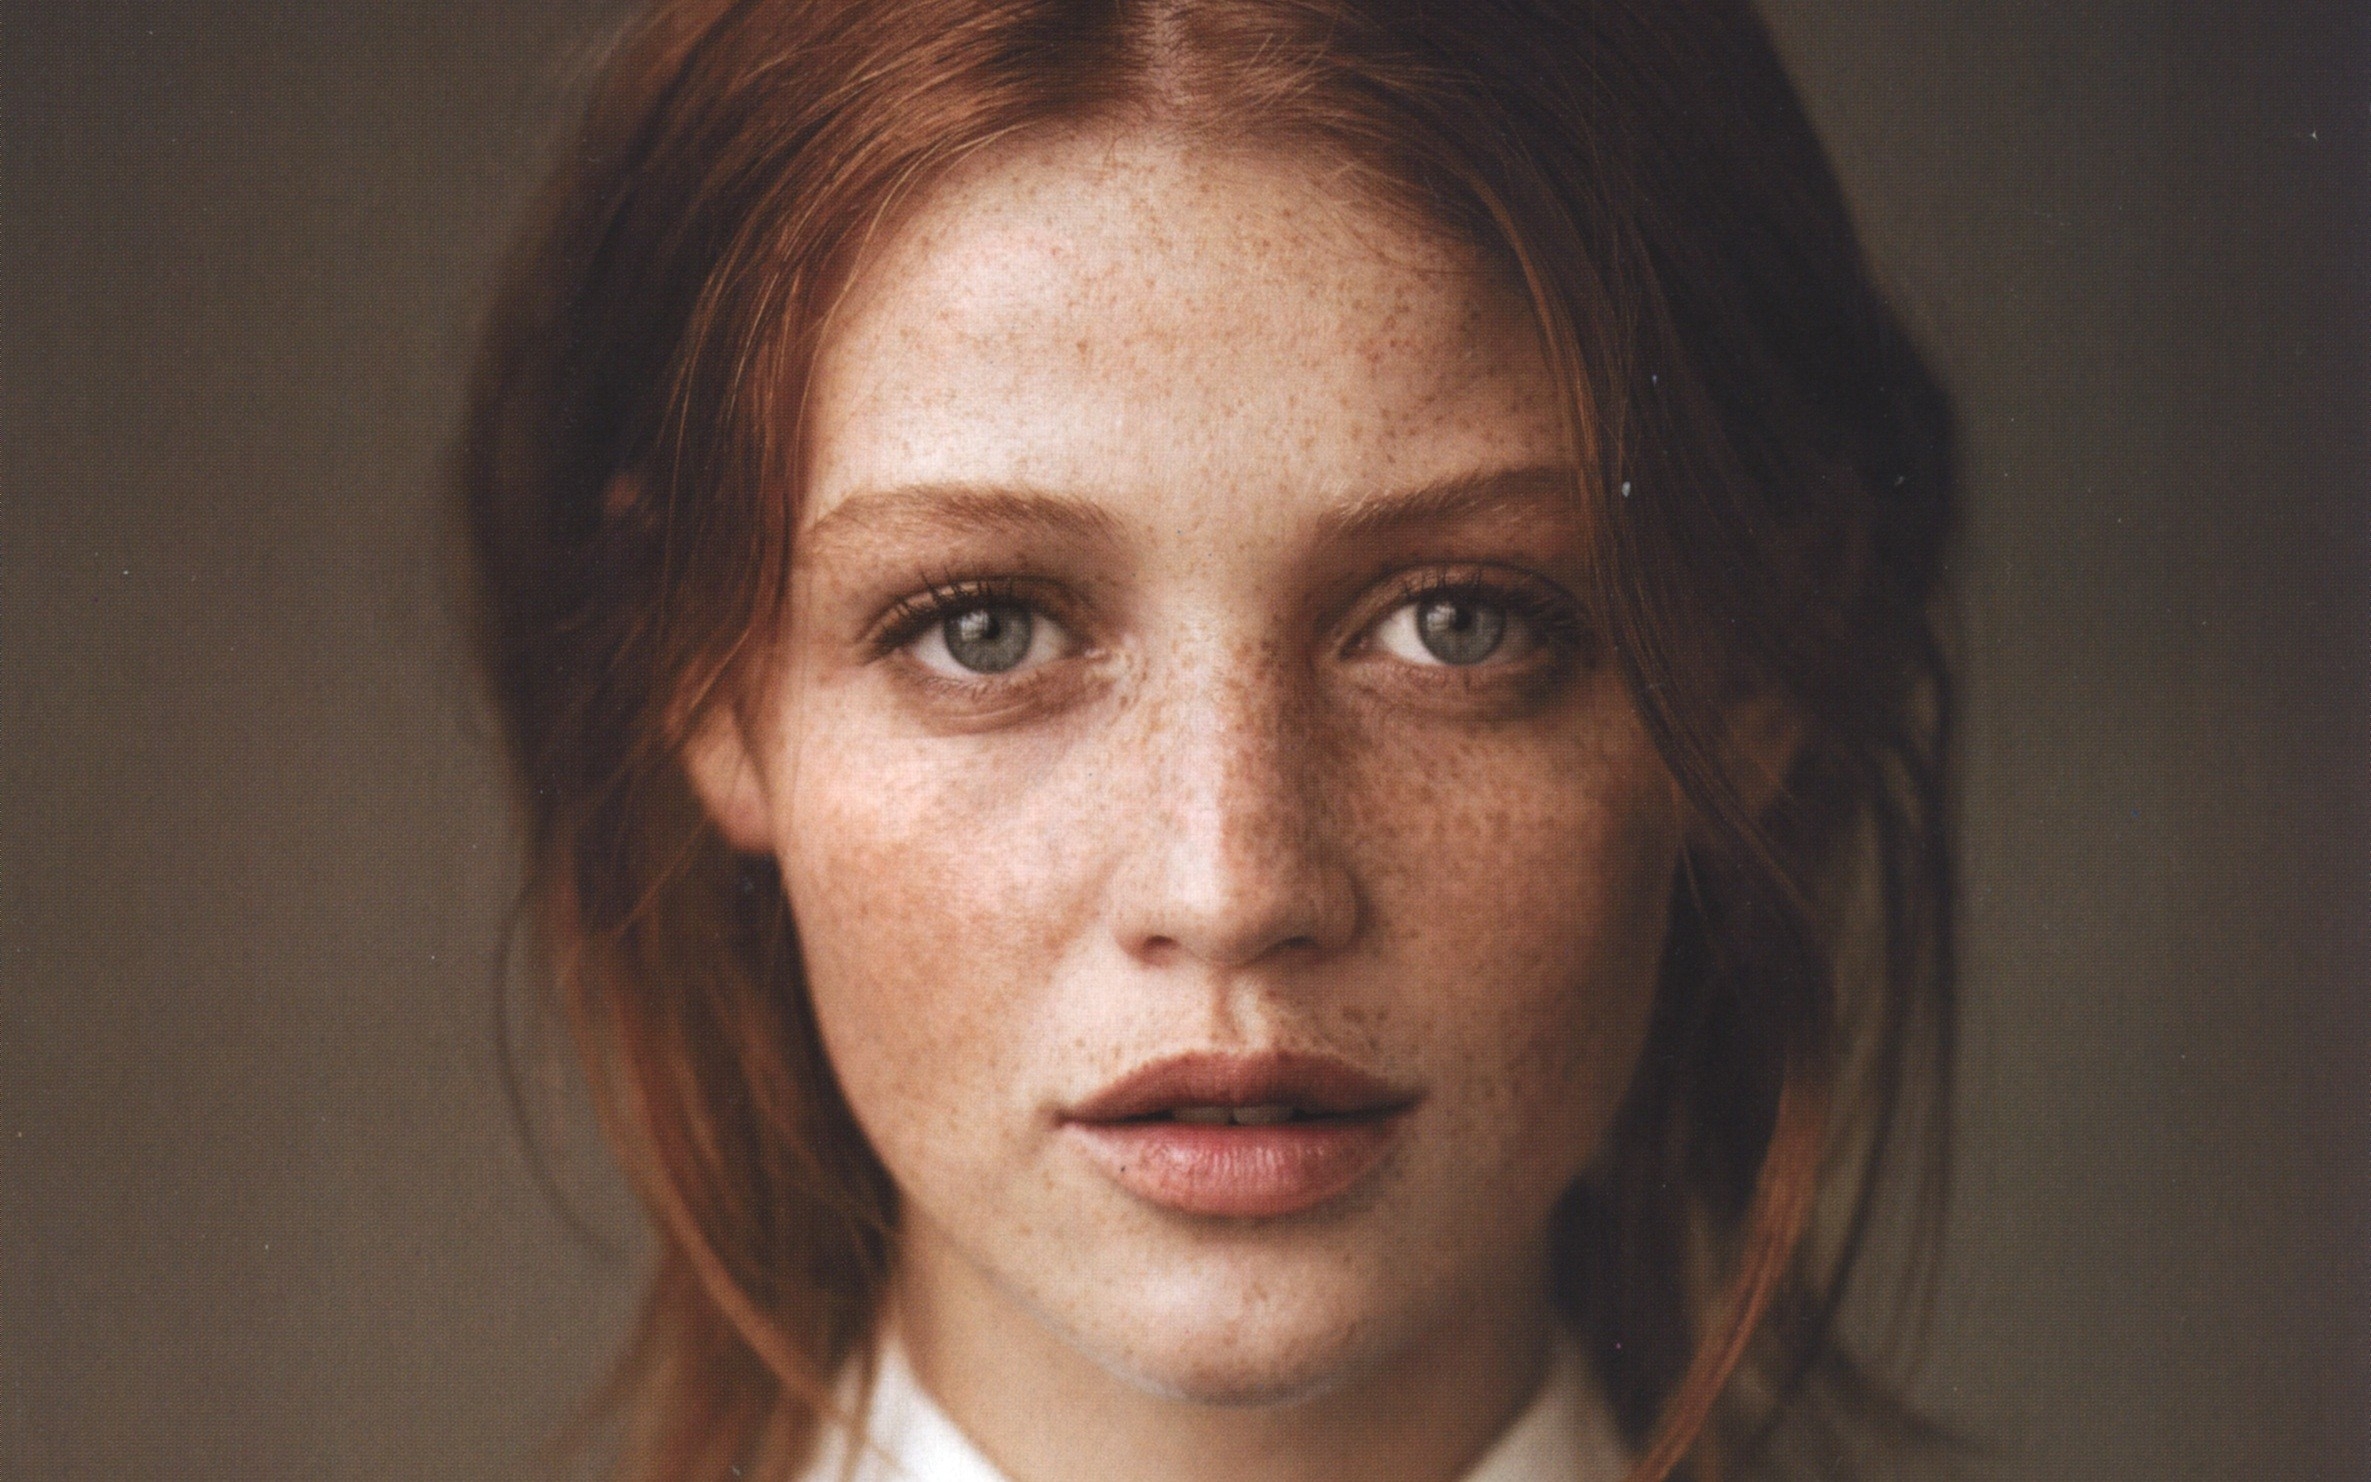 girls with freckles sex pictures